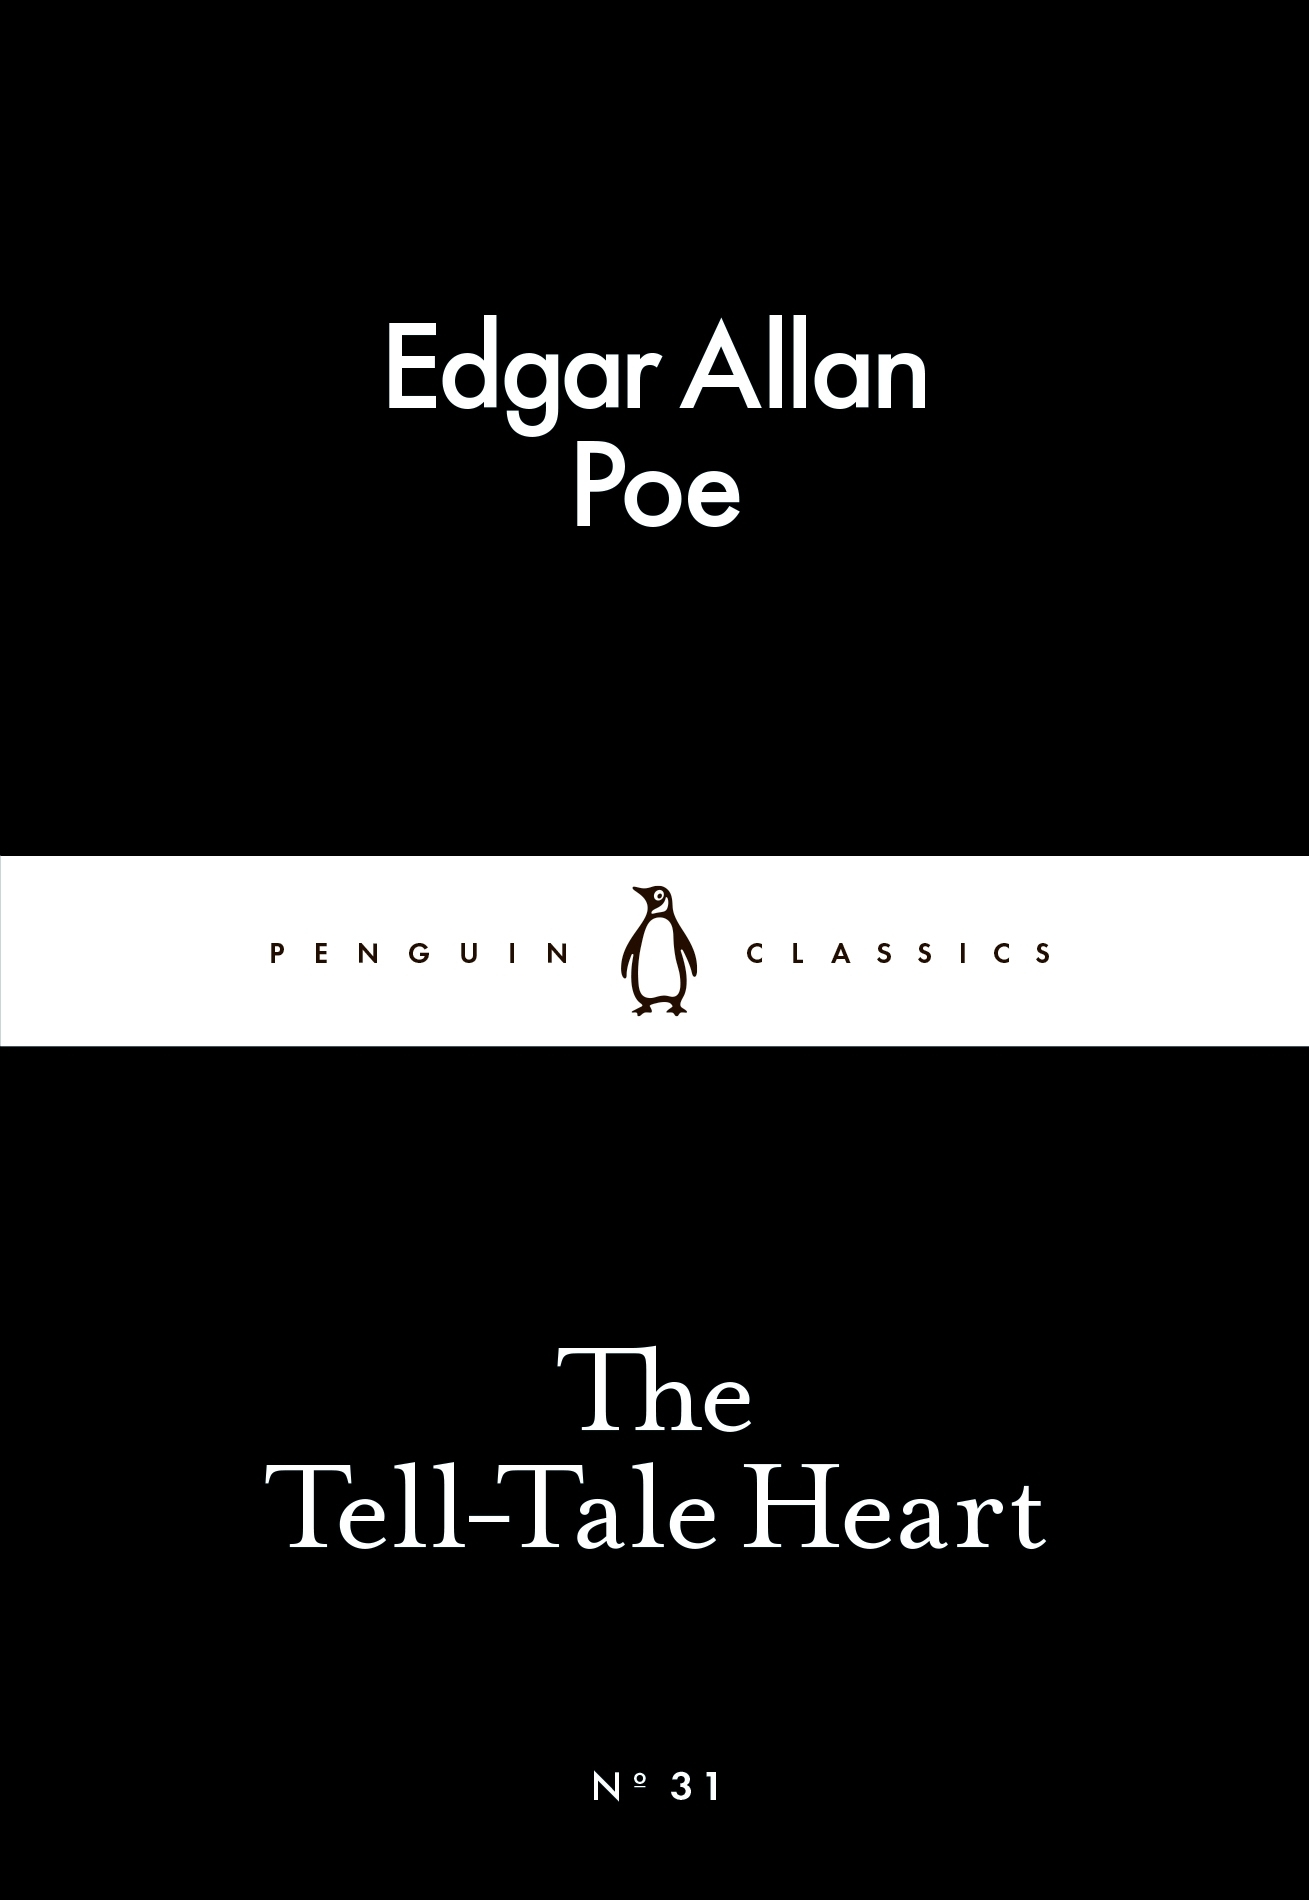 an analysis of the book the tell tale heart by edgar allan poe Edgar allan poe: storyteller author: edgar allan poe second edition: 2013 isbn (print) 978-1-624-25060-6  some words in the book are above this step and will be found written in  boldface letters they are explained in  the tell-tale heart 64.